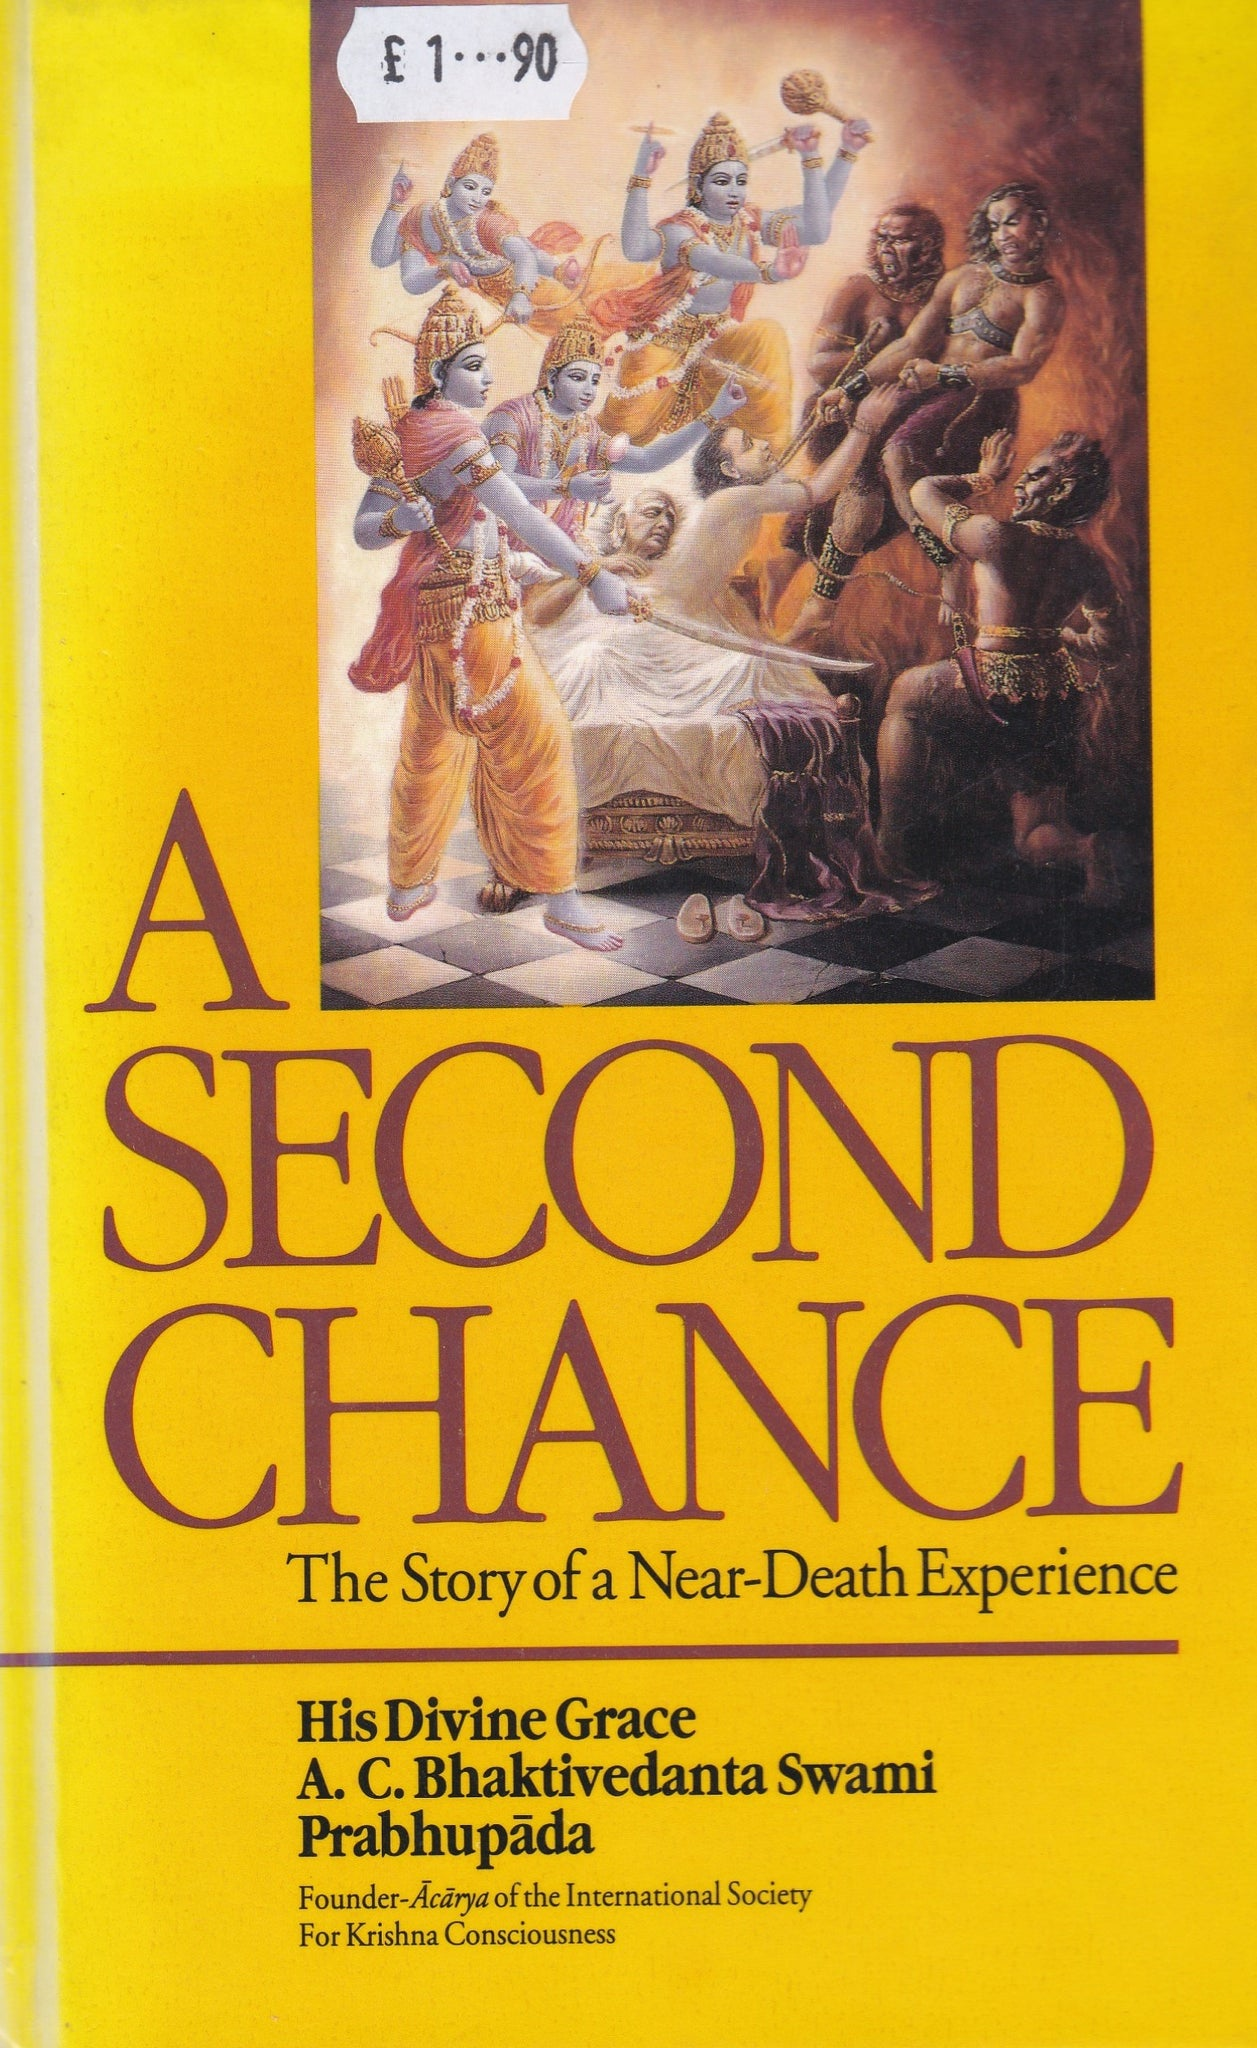 A SECOND CHANCE - The Story of Near-Death Experience